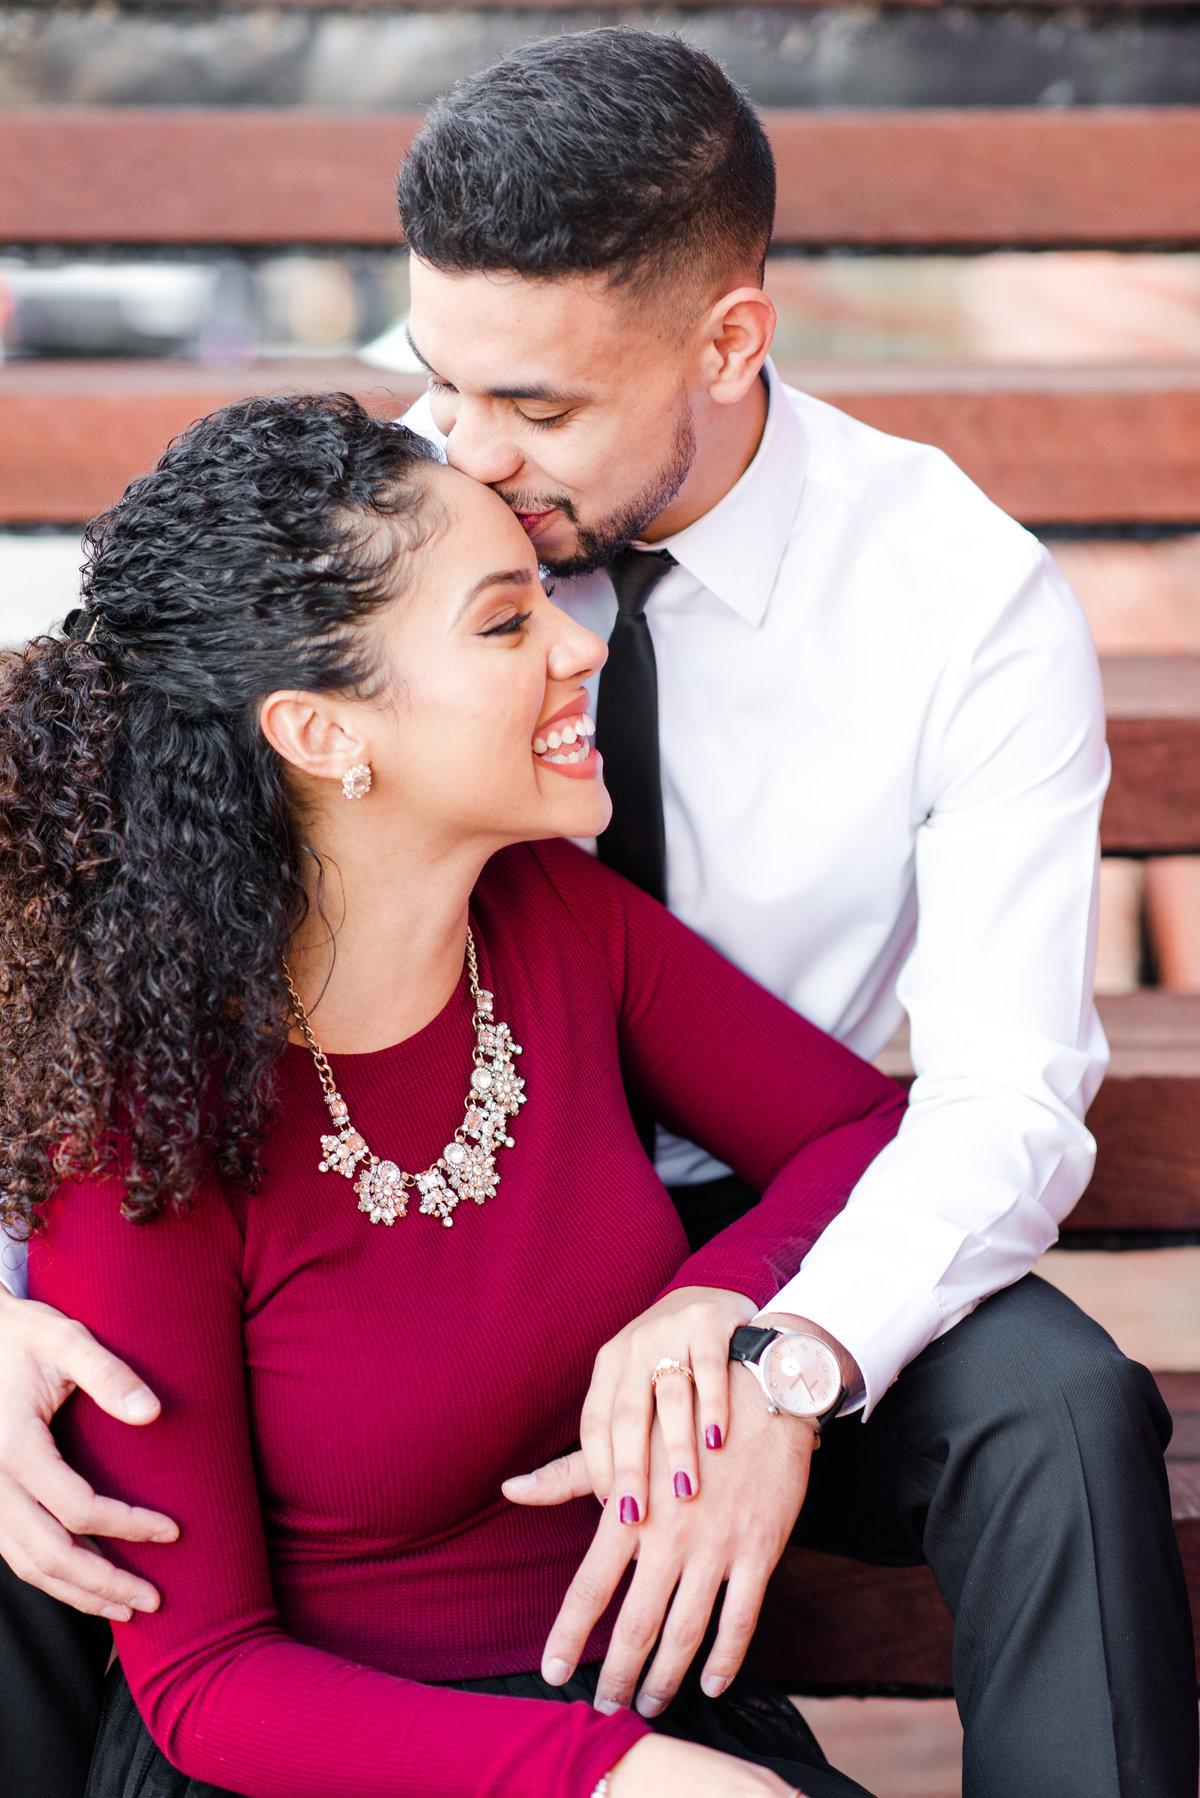 5-reasons-for-an-engagement-session-0001